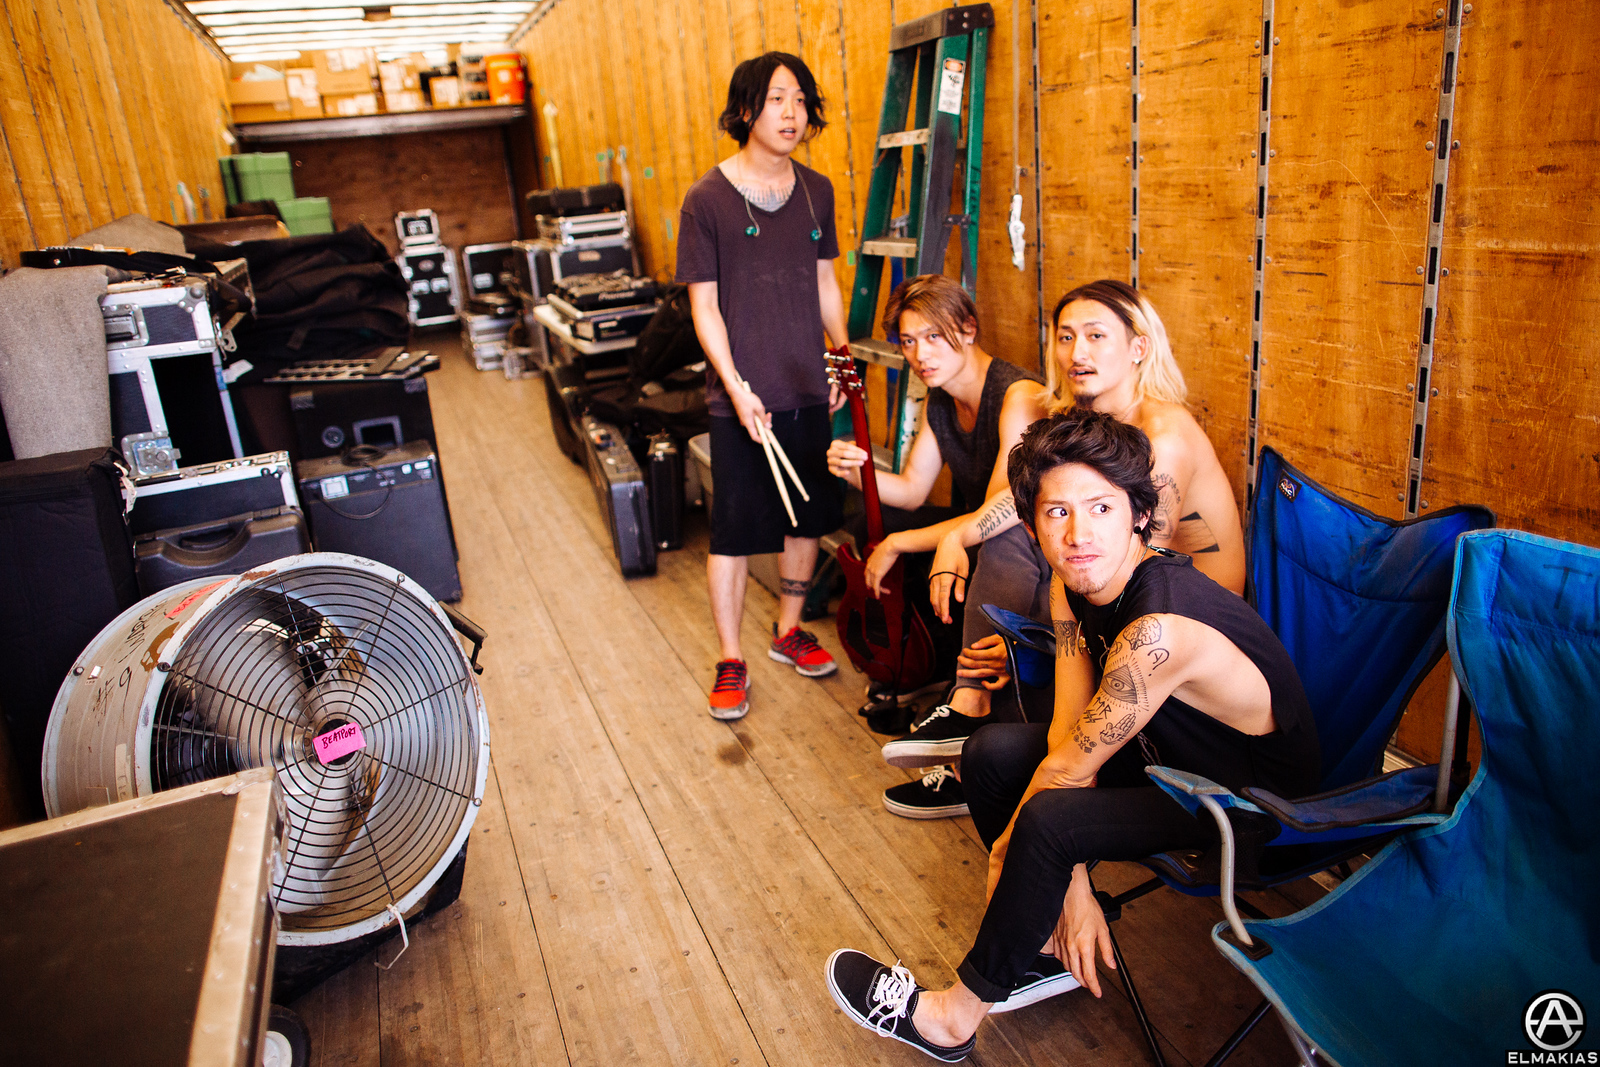 ONE OK ROCK waiting for the dust storm to past